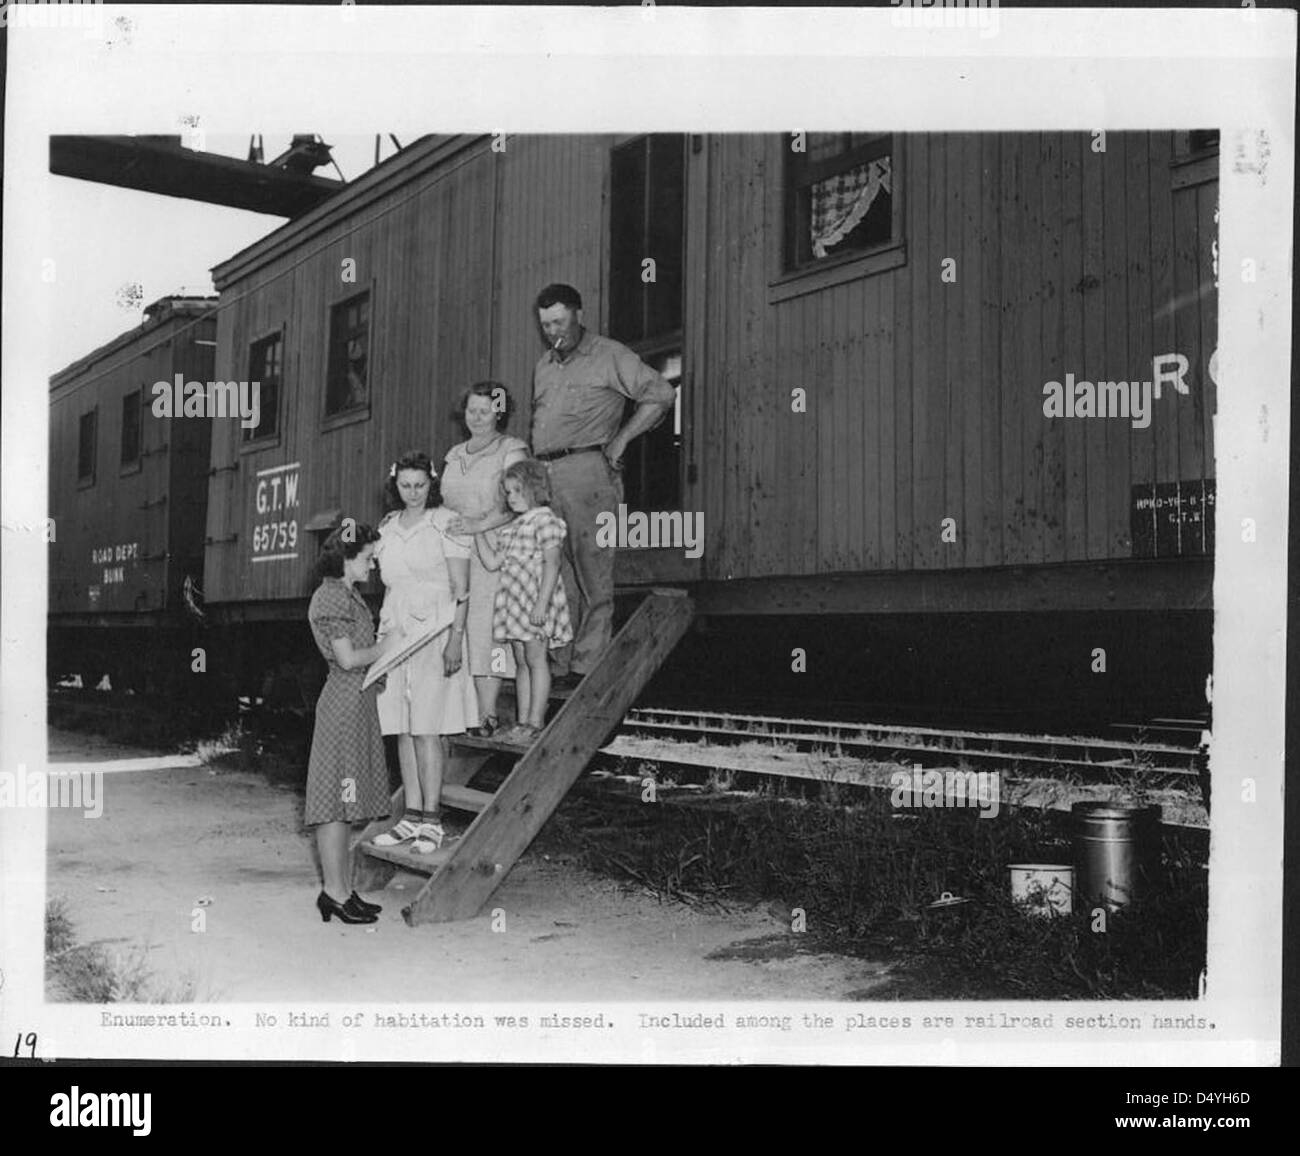 Enumeration, No Kind of Habitation was Missed, Included among the Places are Railroad Section Hands, 1940 - 1941 - Stock Image